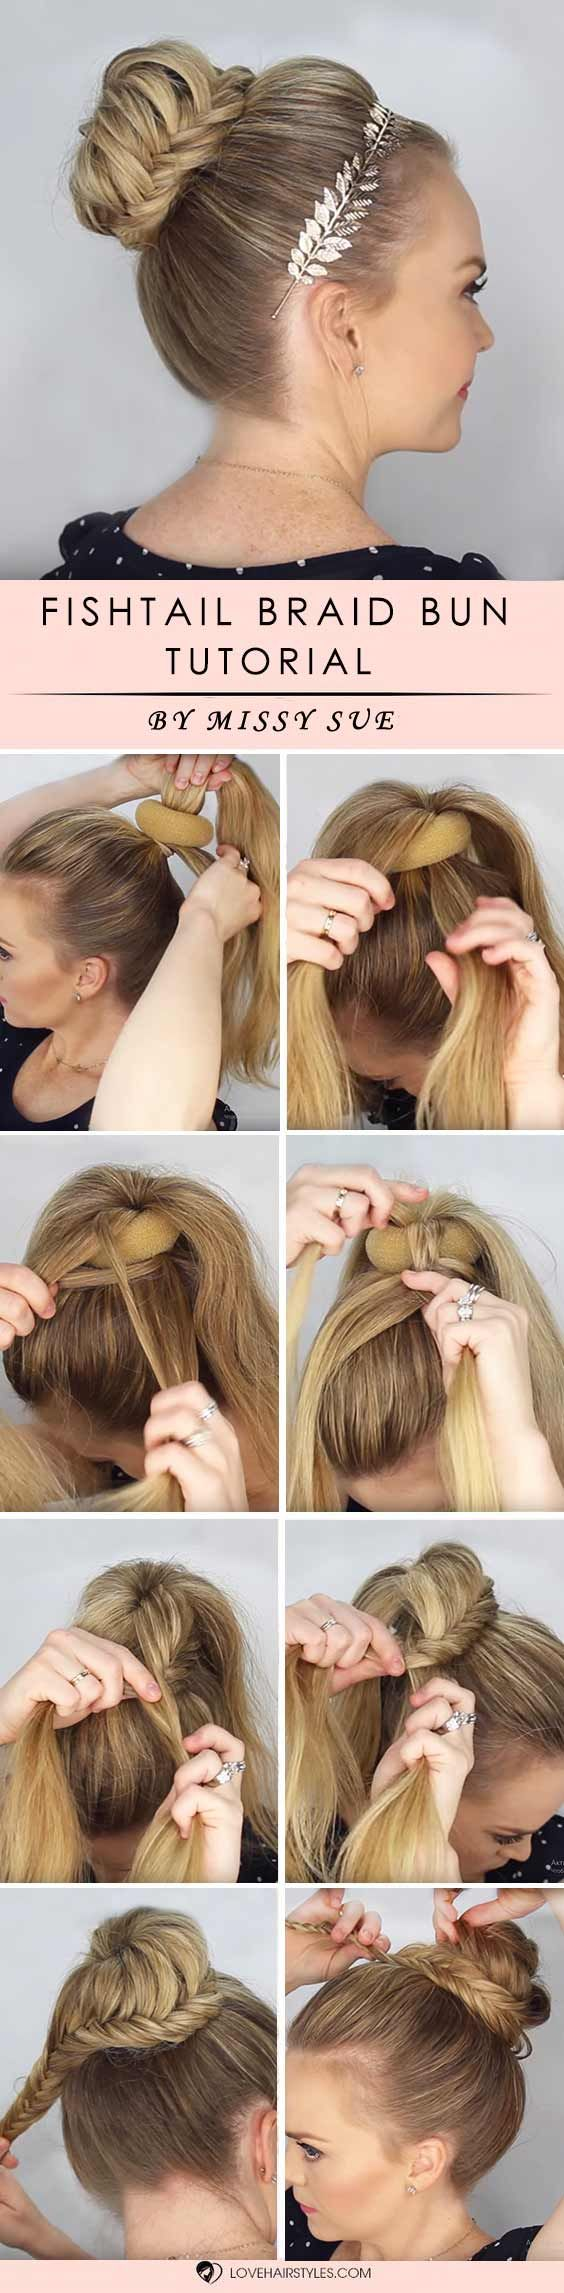 How to braid hair? We all ask this question from time to time, especially when we tried it all already and simple curling and straightening is no fun any longer. We have step by step tutorials that will teach you how to braid your tresses for a super adorable look. Check out our post! Fishtail Braid Bun #braidedhair #howtobraidhair #braidstutorial